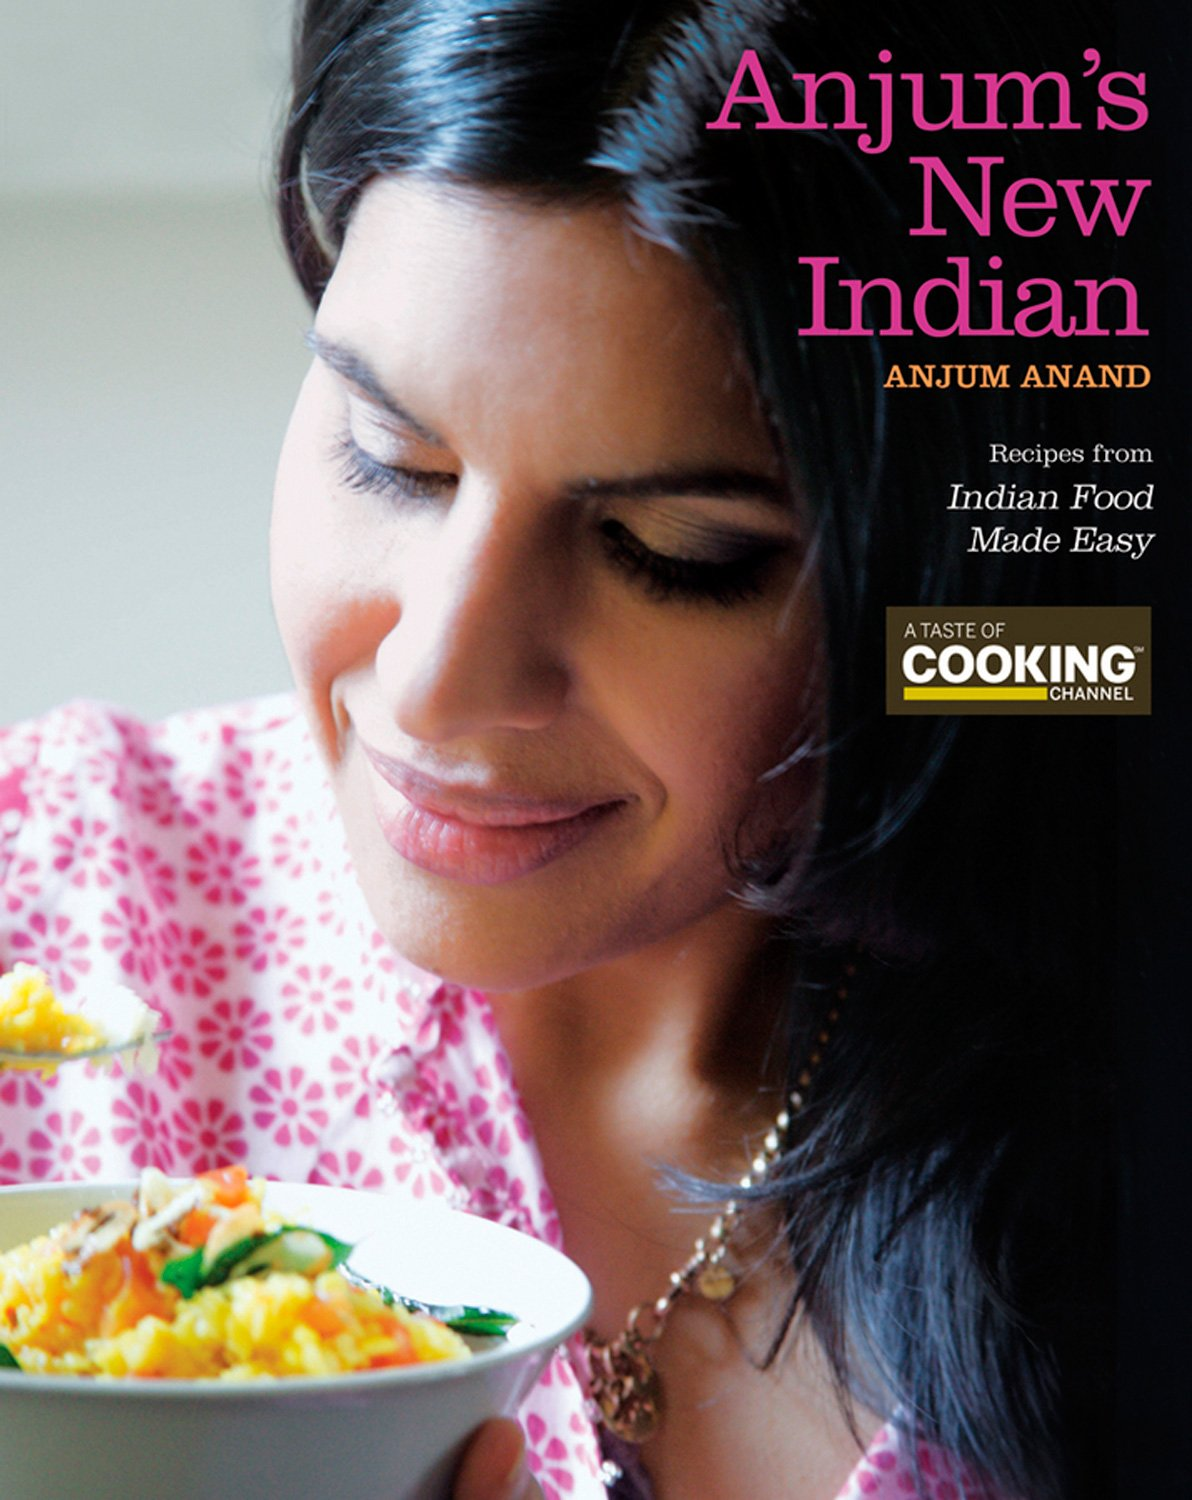 Anjums new indian anjum anand 9780470928127 amazon books forumfinder Gallery